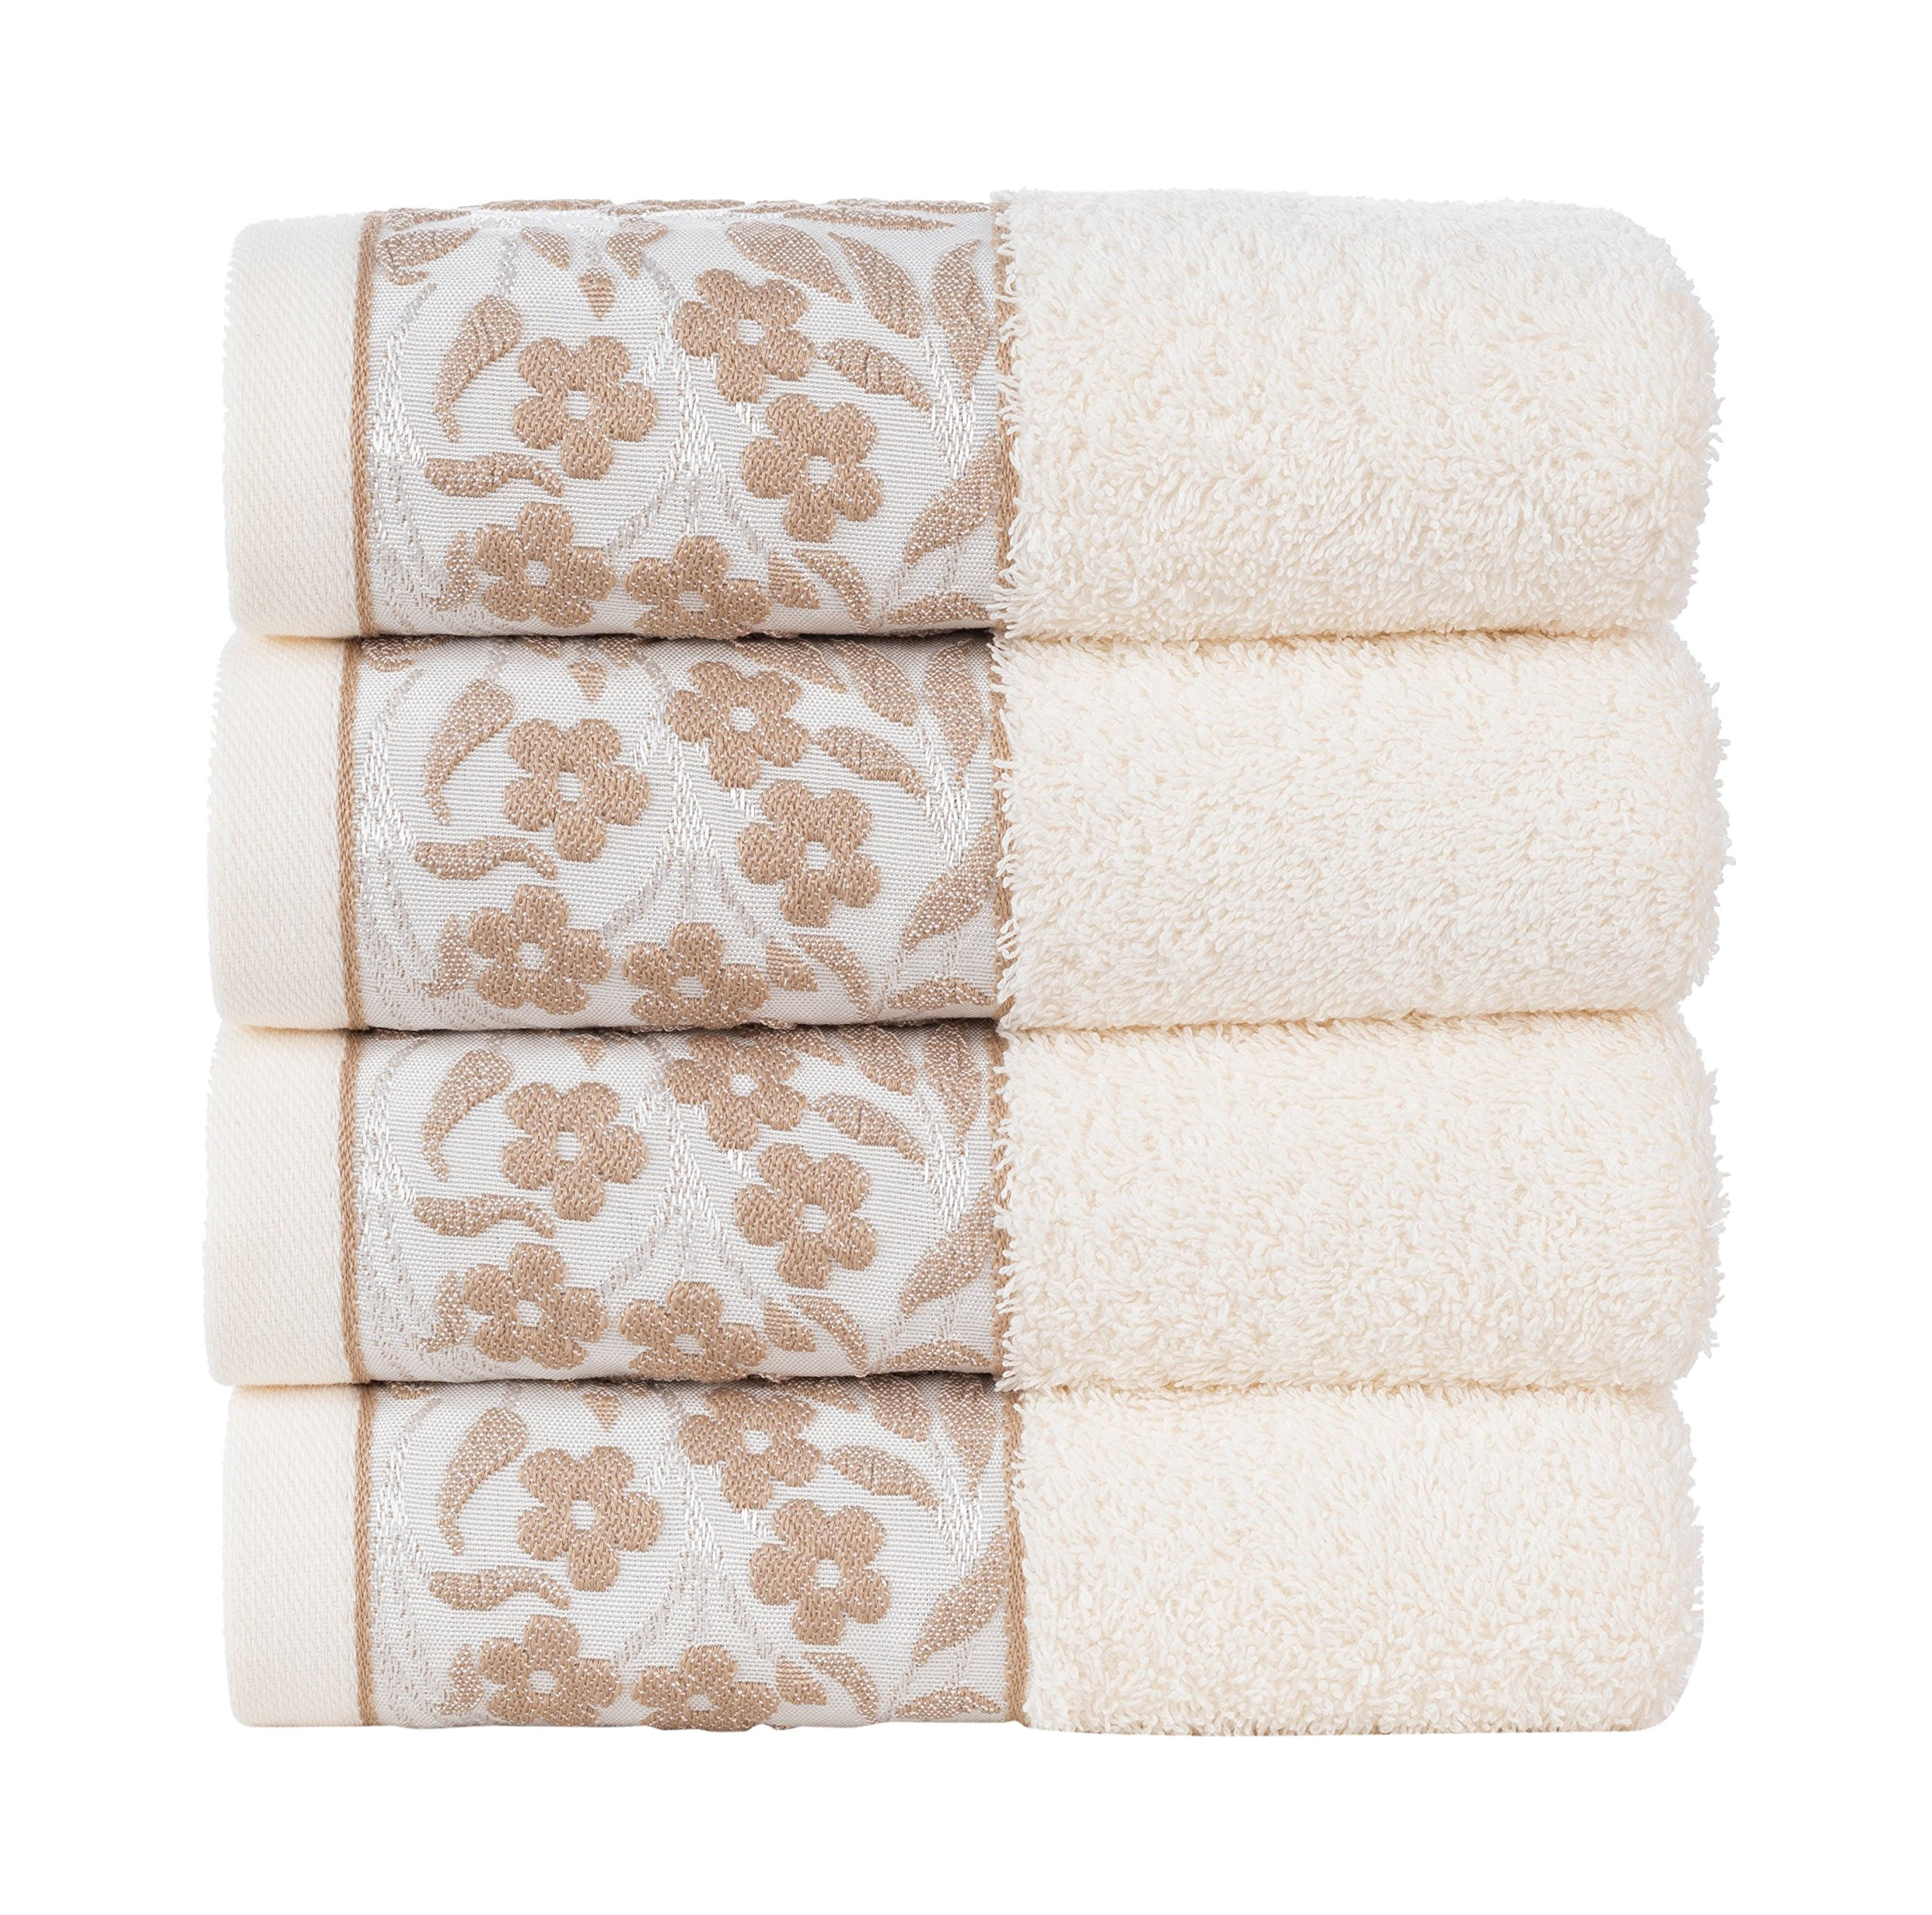 HYGGE Premium 100% Turkish Cotton Hand Towel with Floral Jacquard 19'' x 32'' (Set of 4) (Cream)